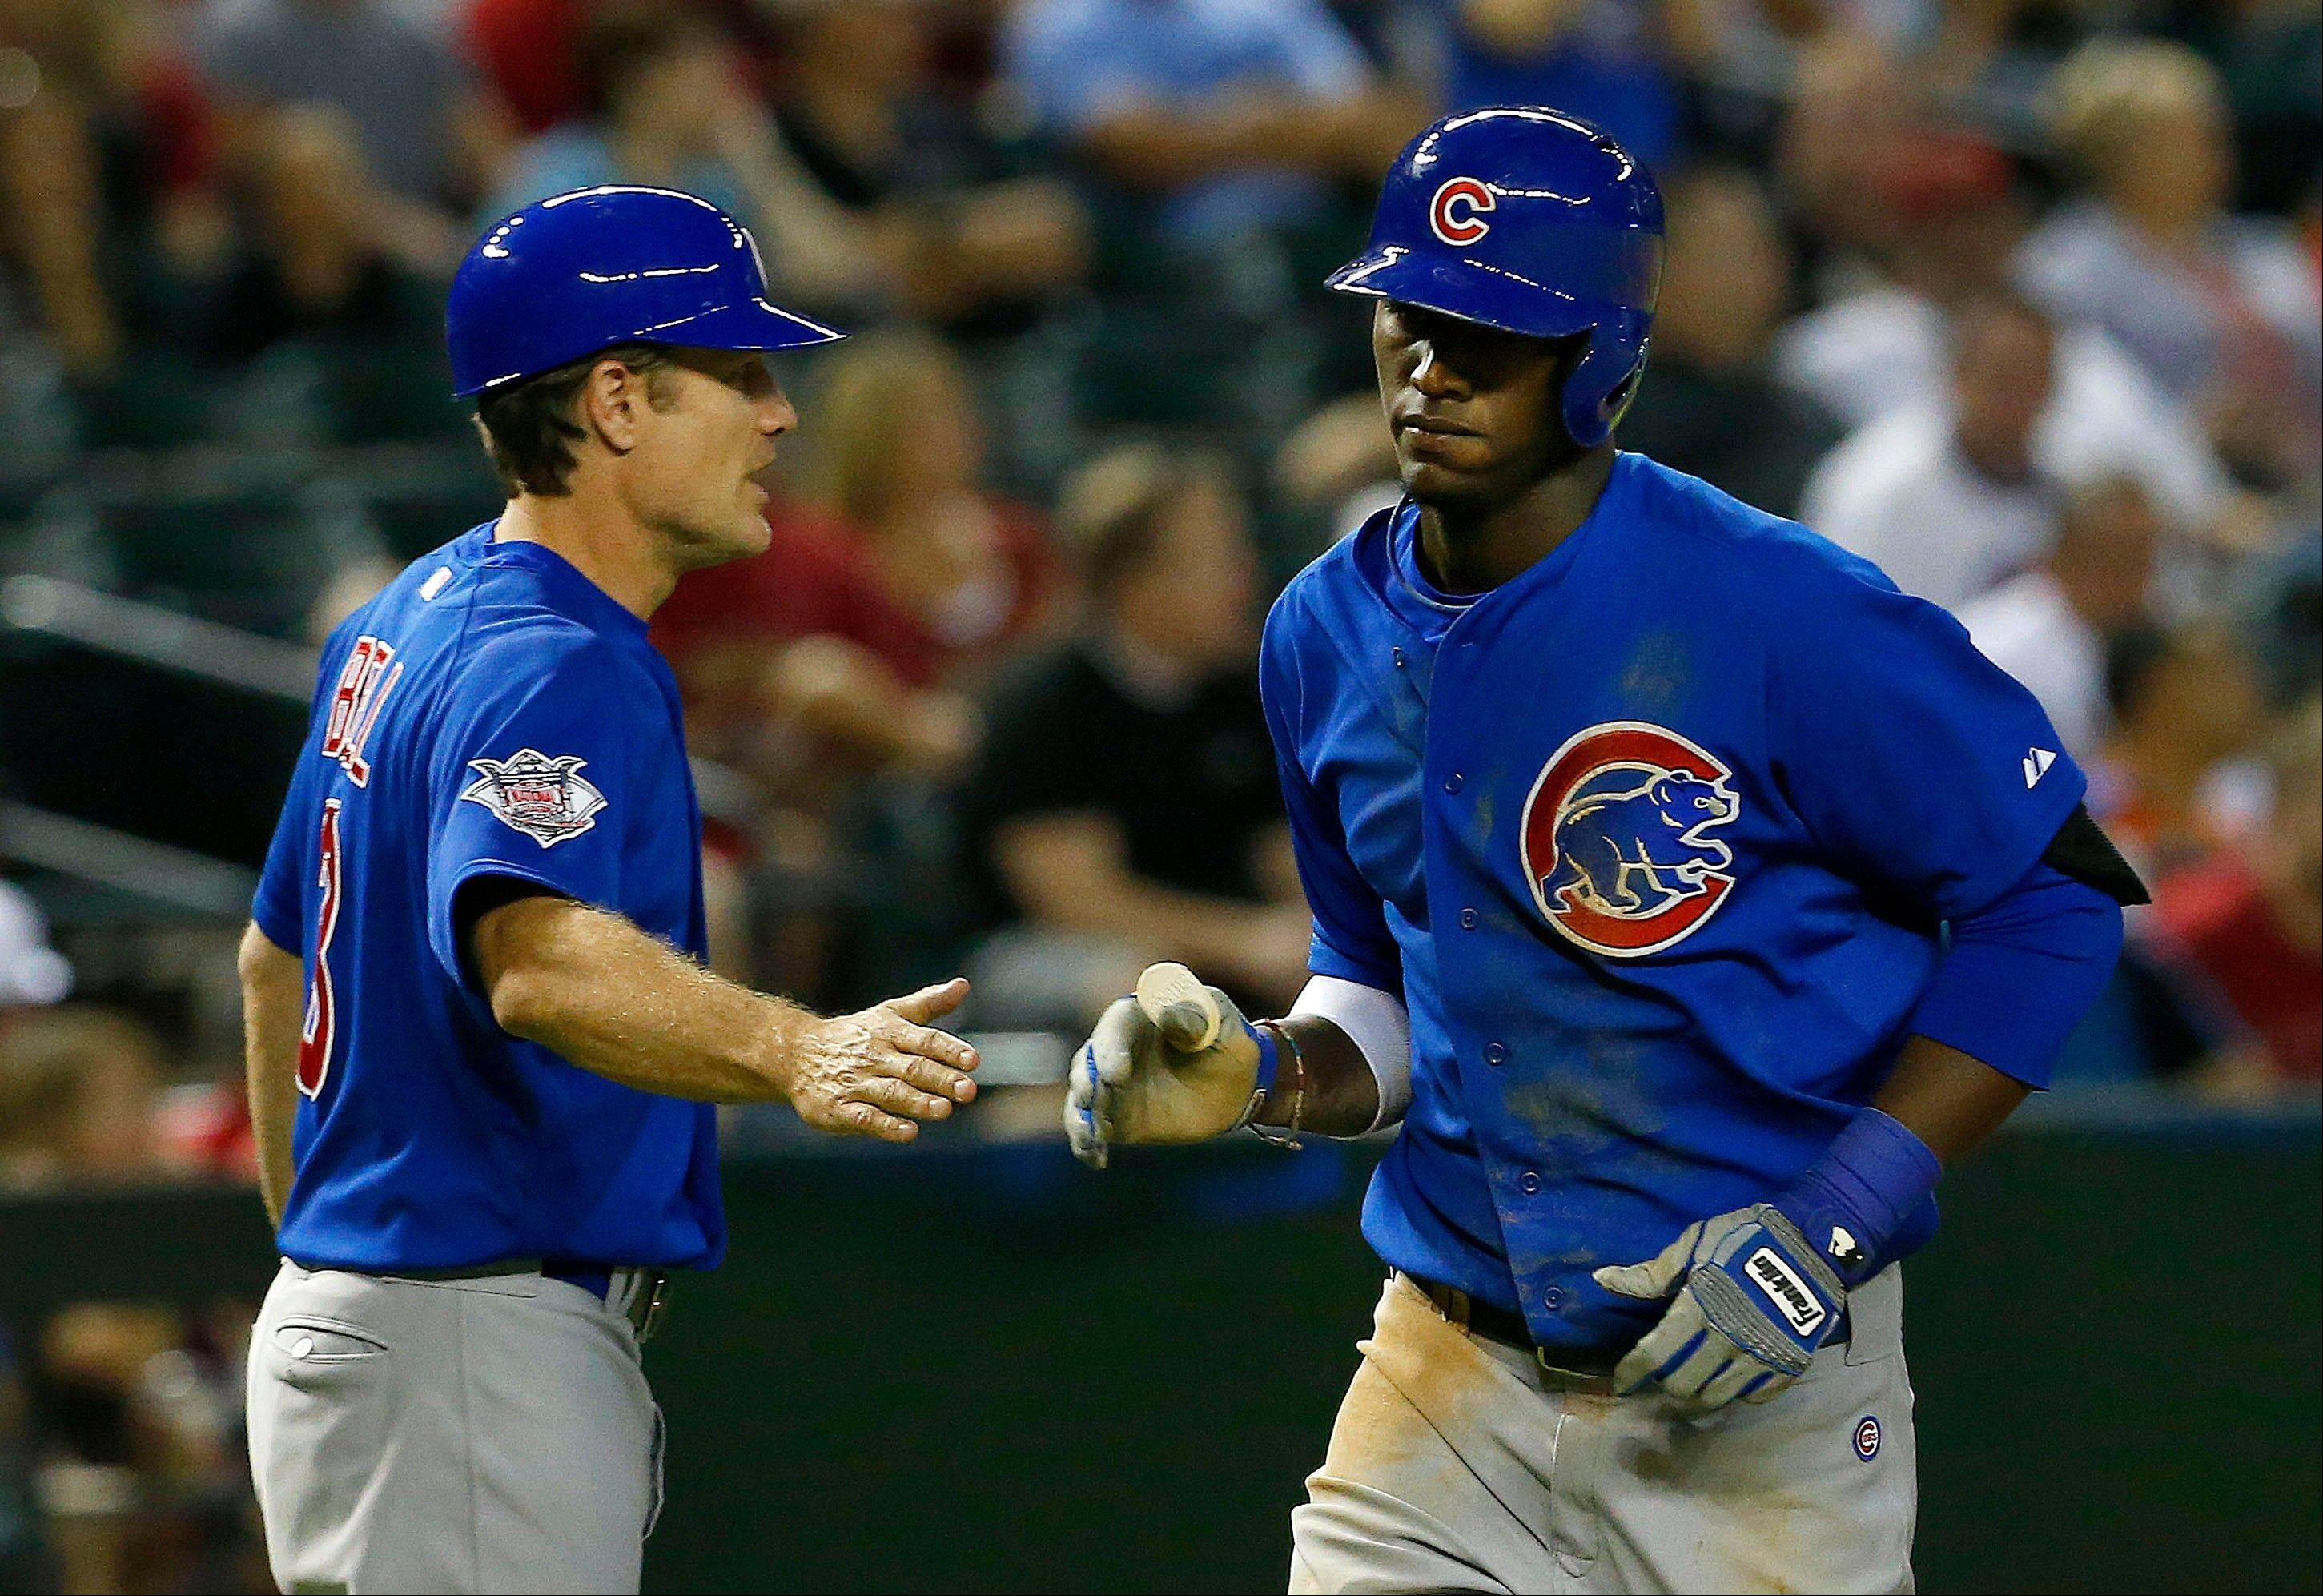 Lake leads Cubs past Diamondbacks 4-2